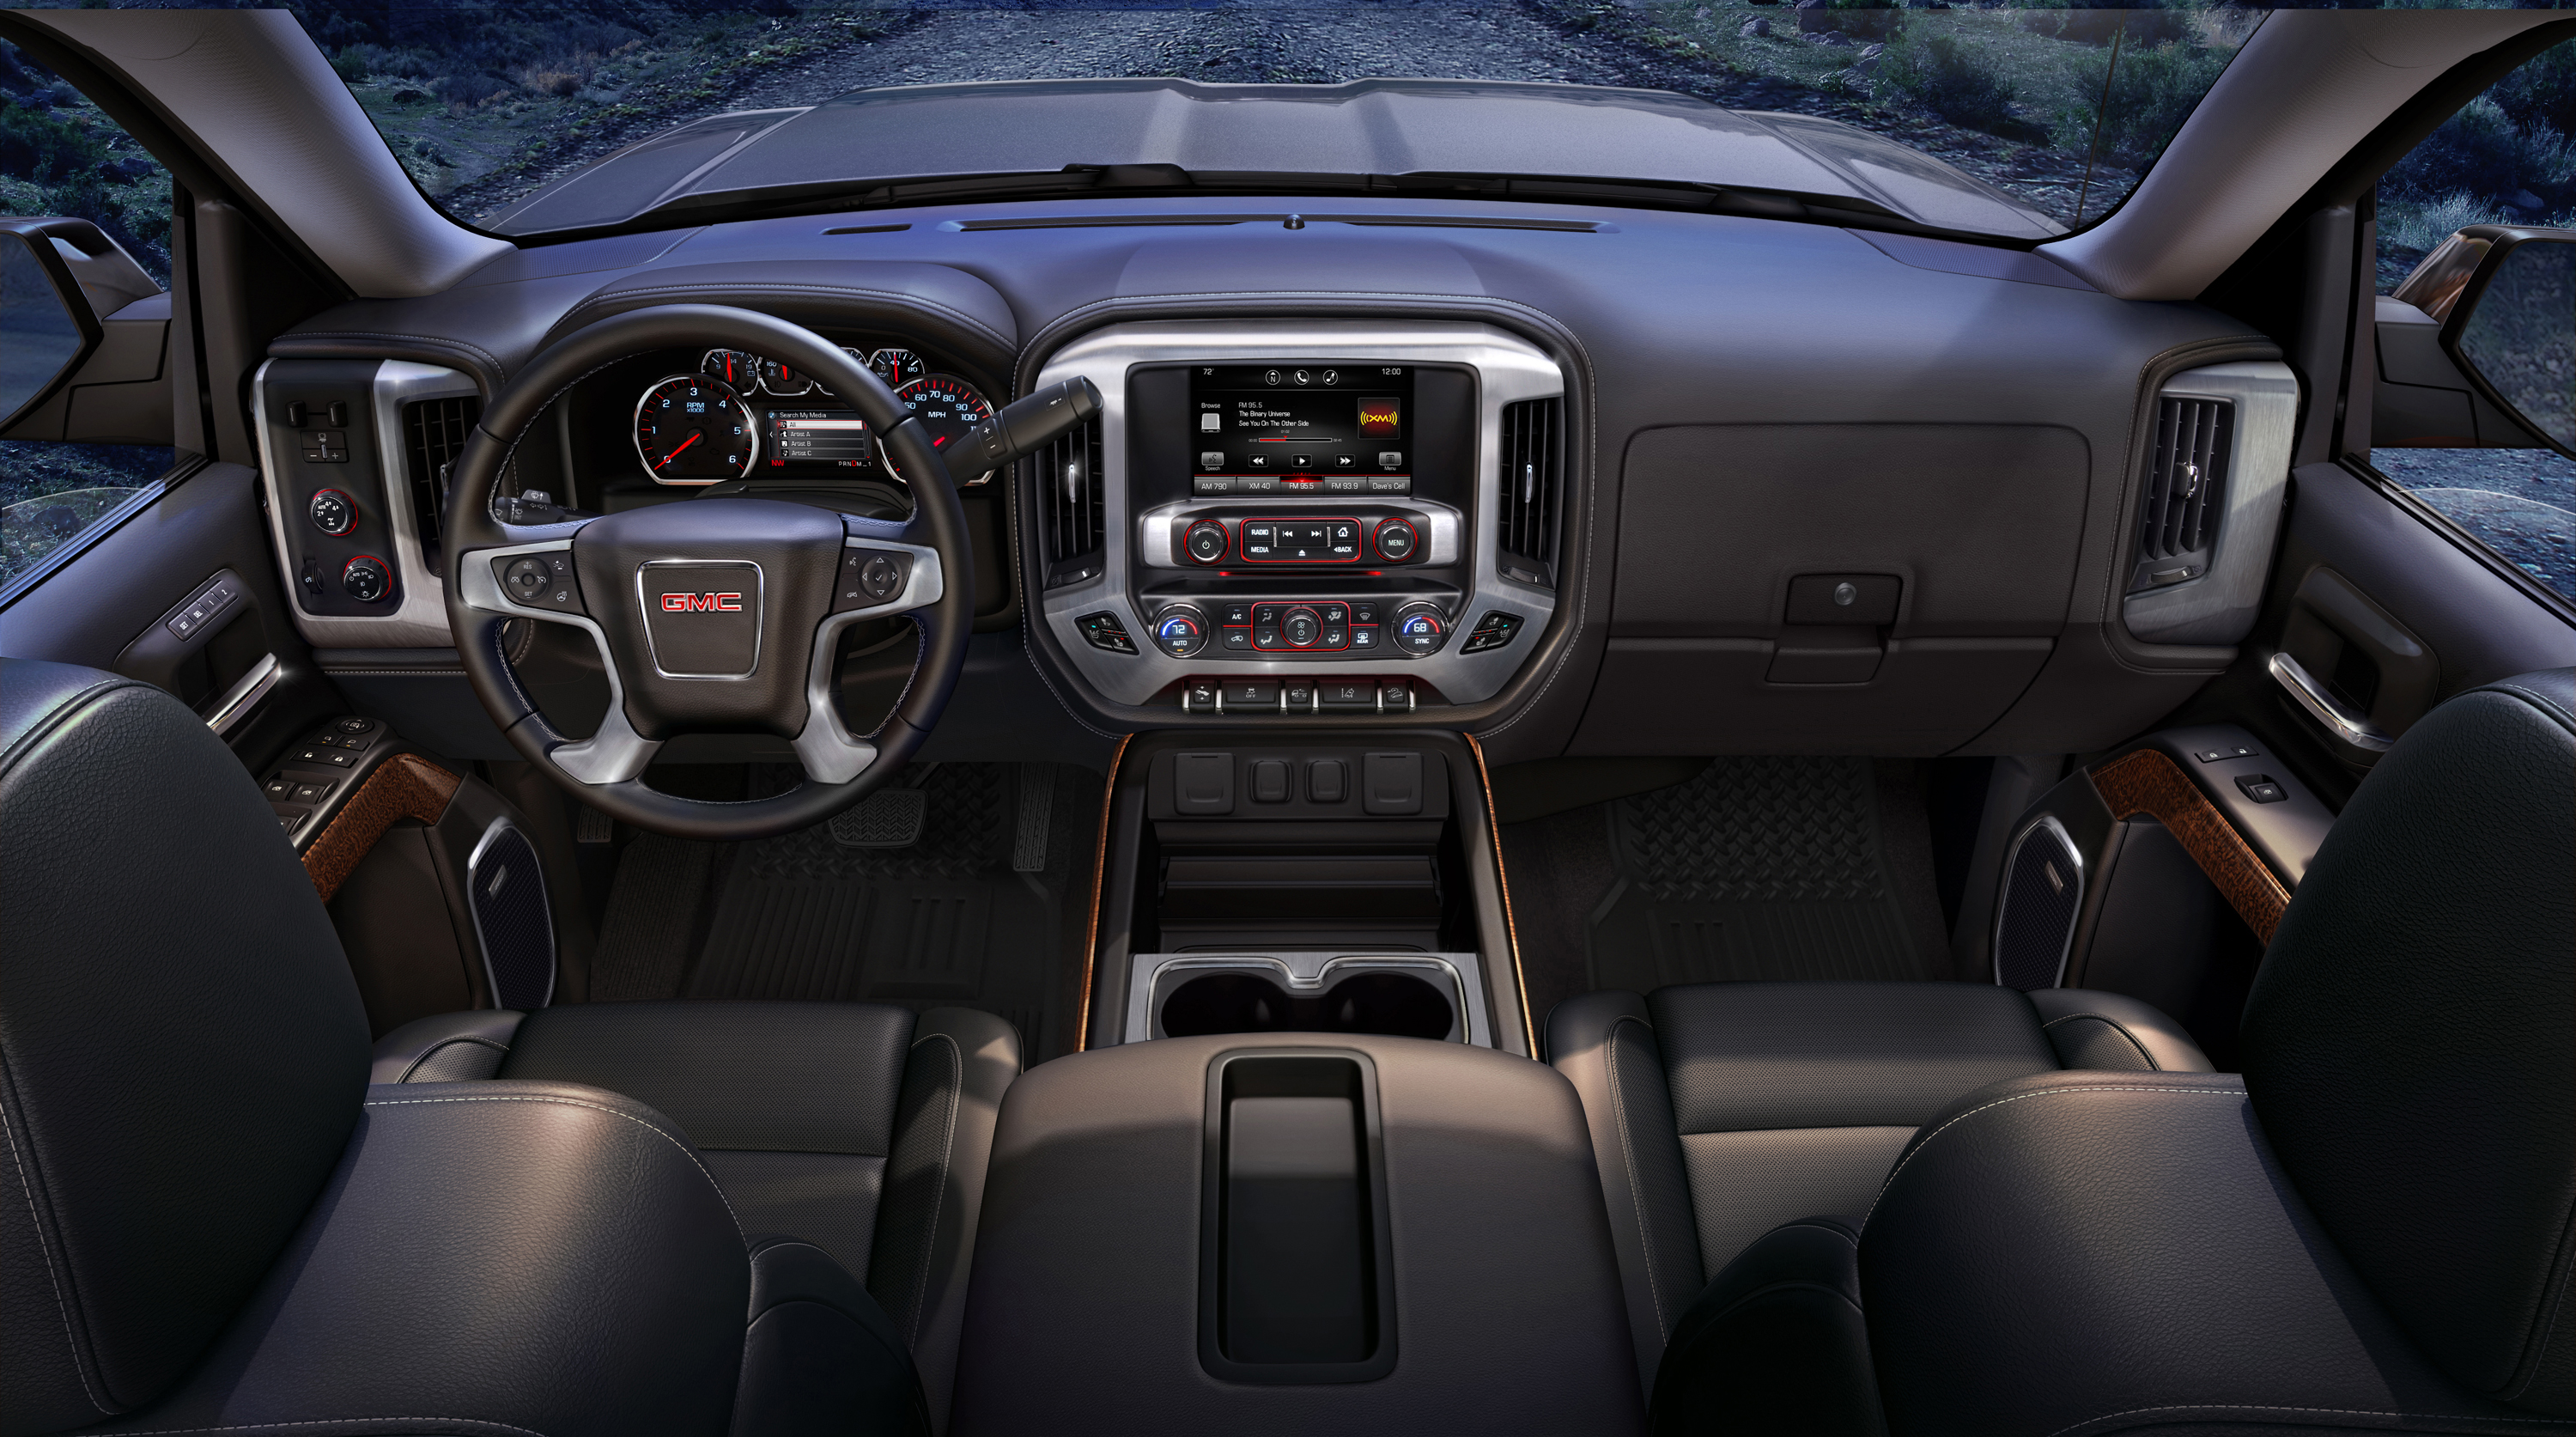 2017 Gmc Sierra Slt Interior Front Dash View From The Rear Seats